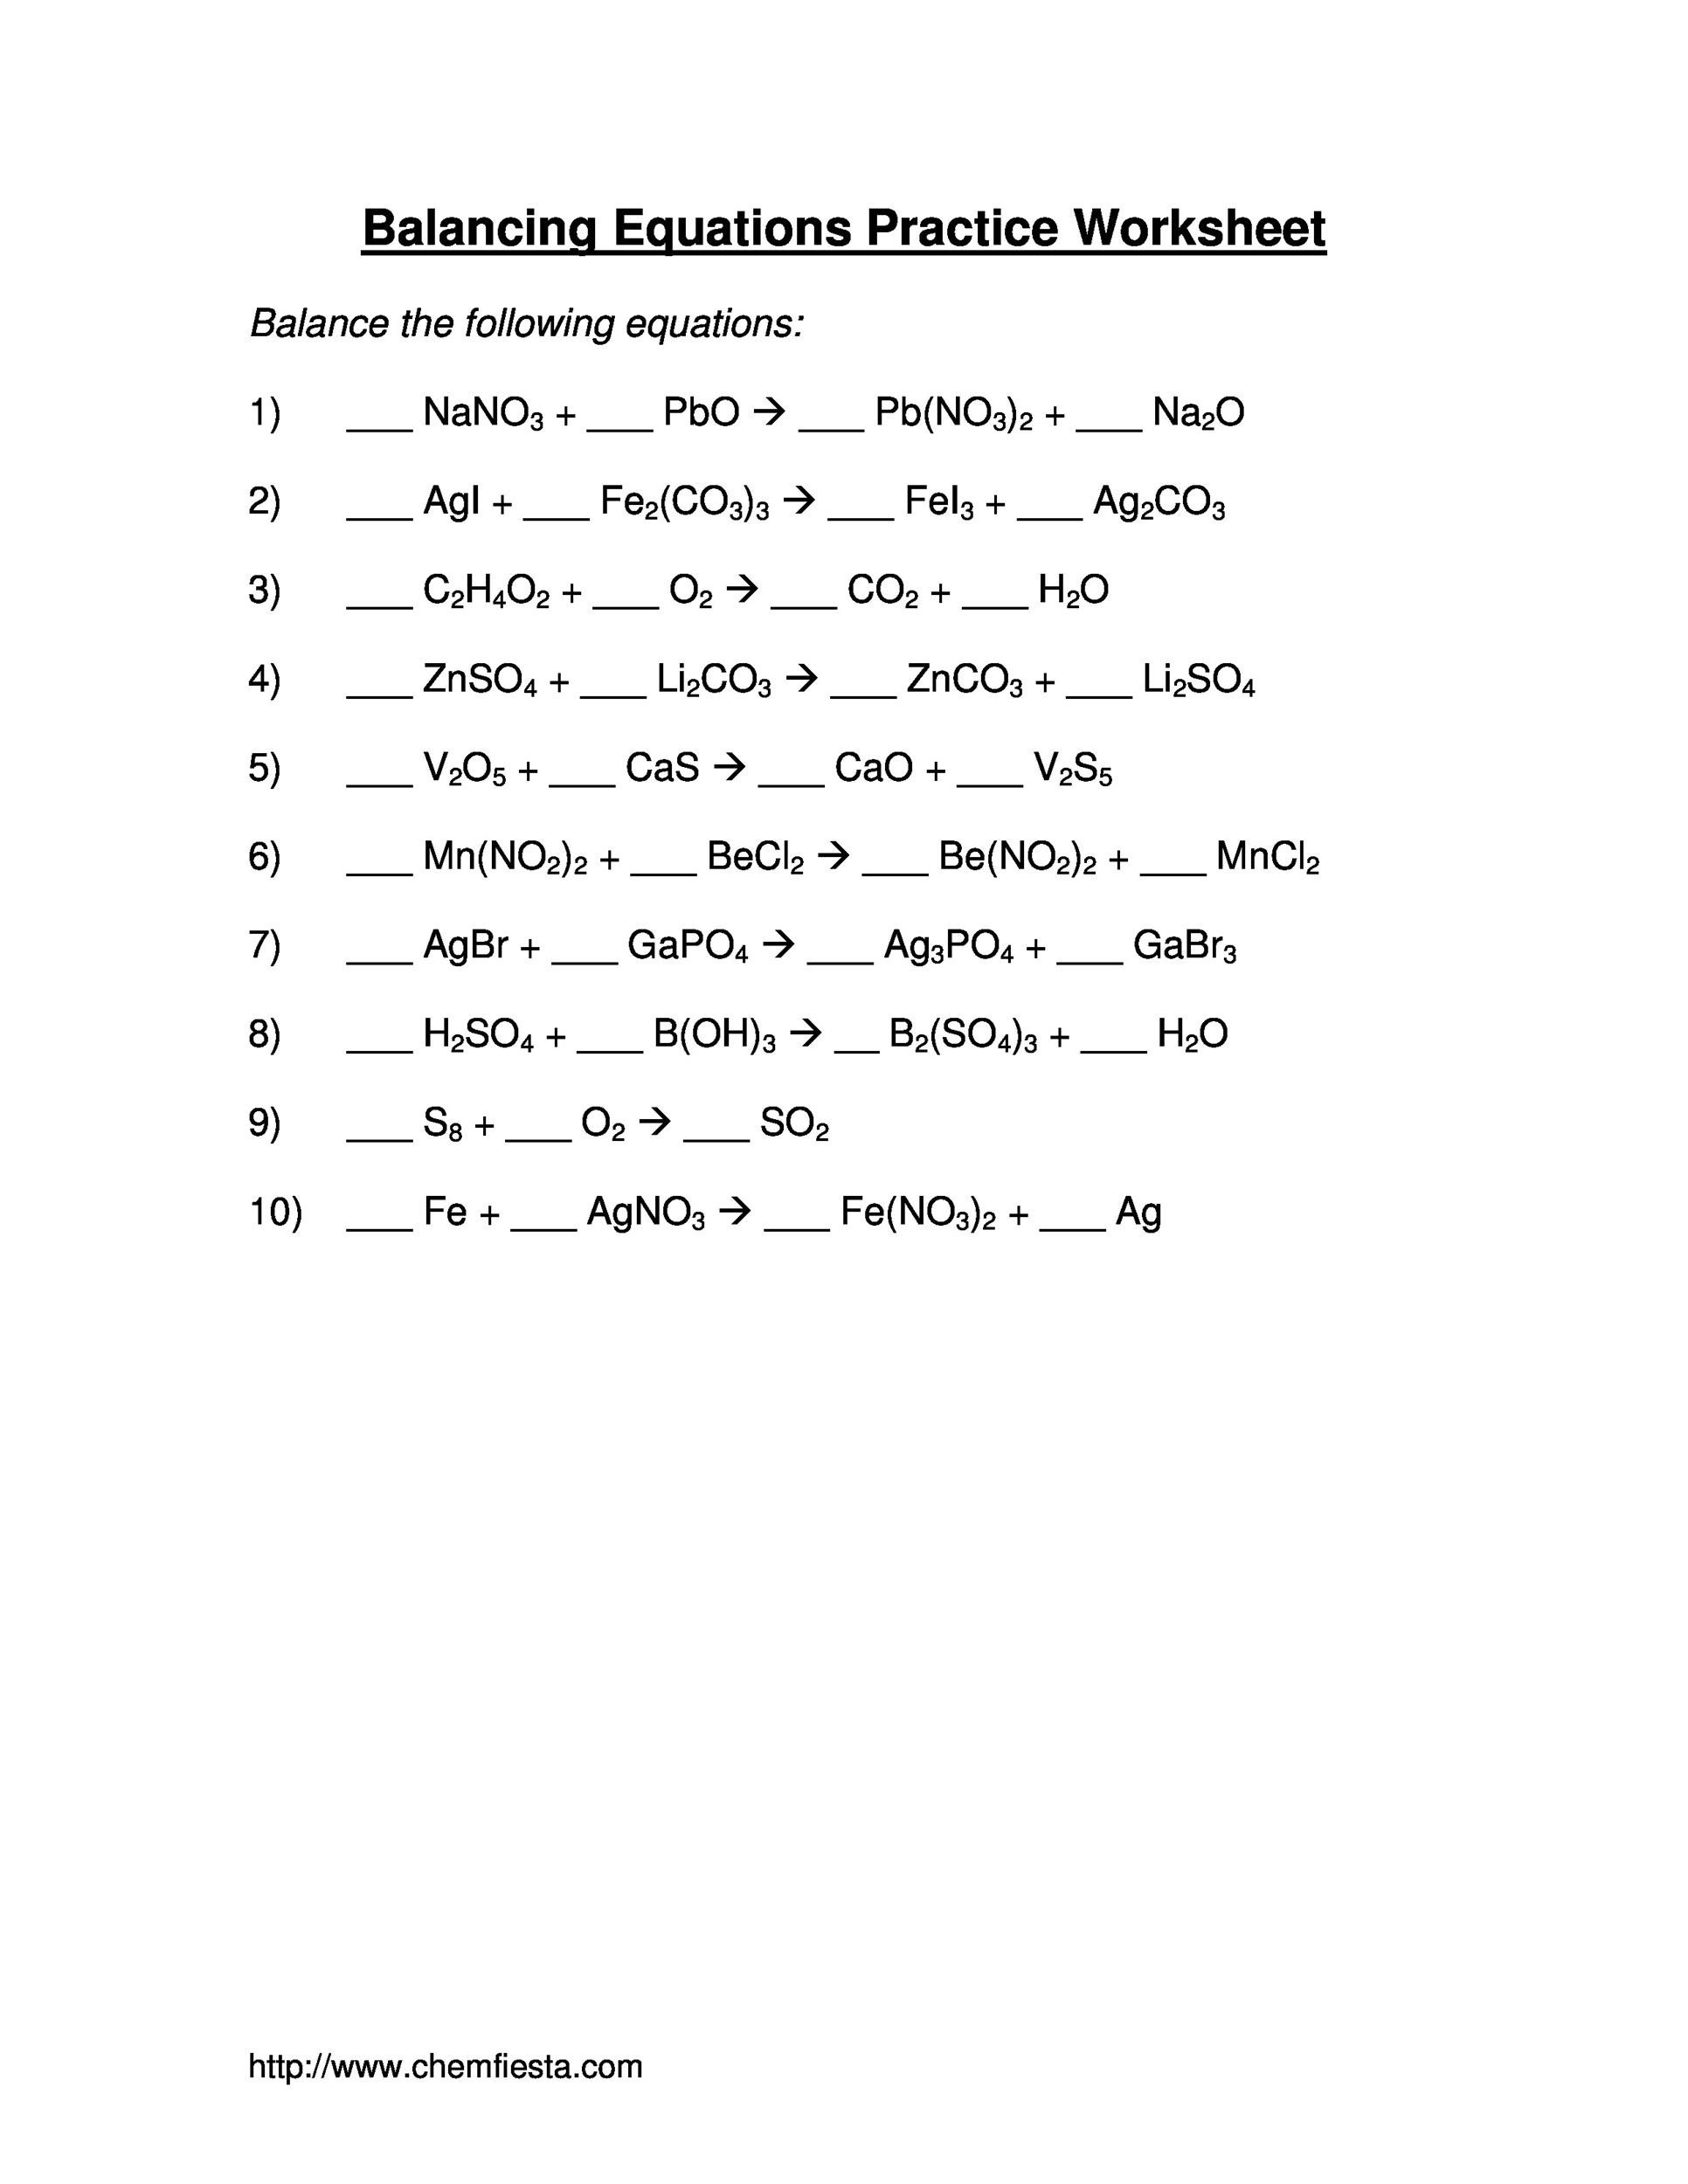 Worksheets Worksheet-balancing-chemical-equations 49 balancing chemical equations worksheets with answers free 06